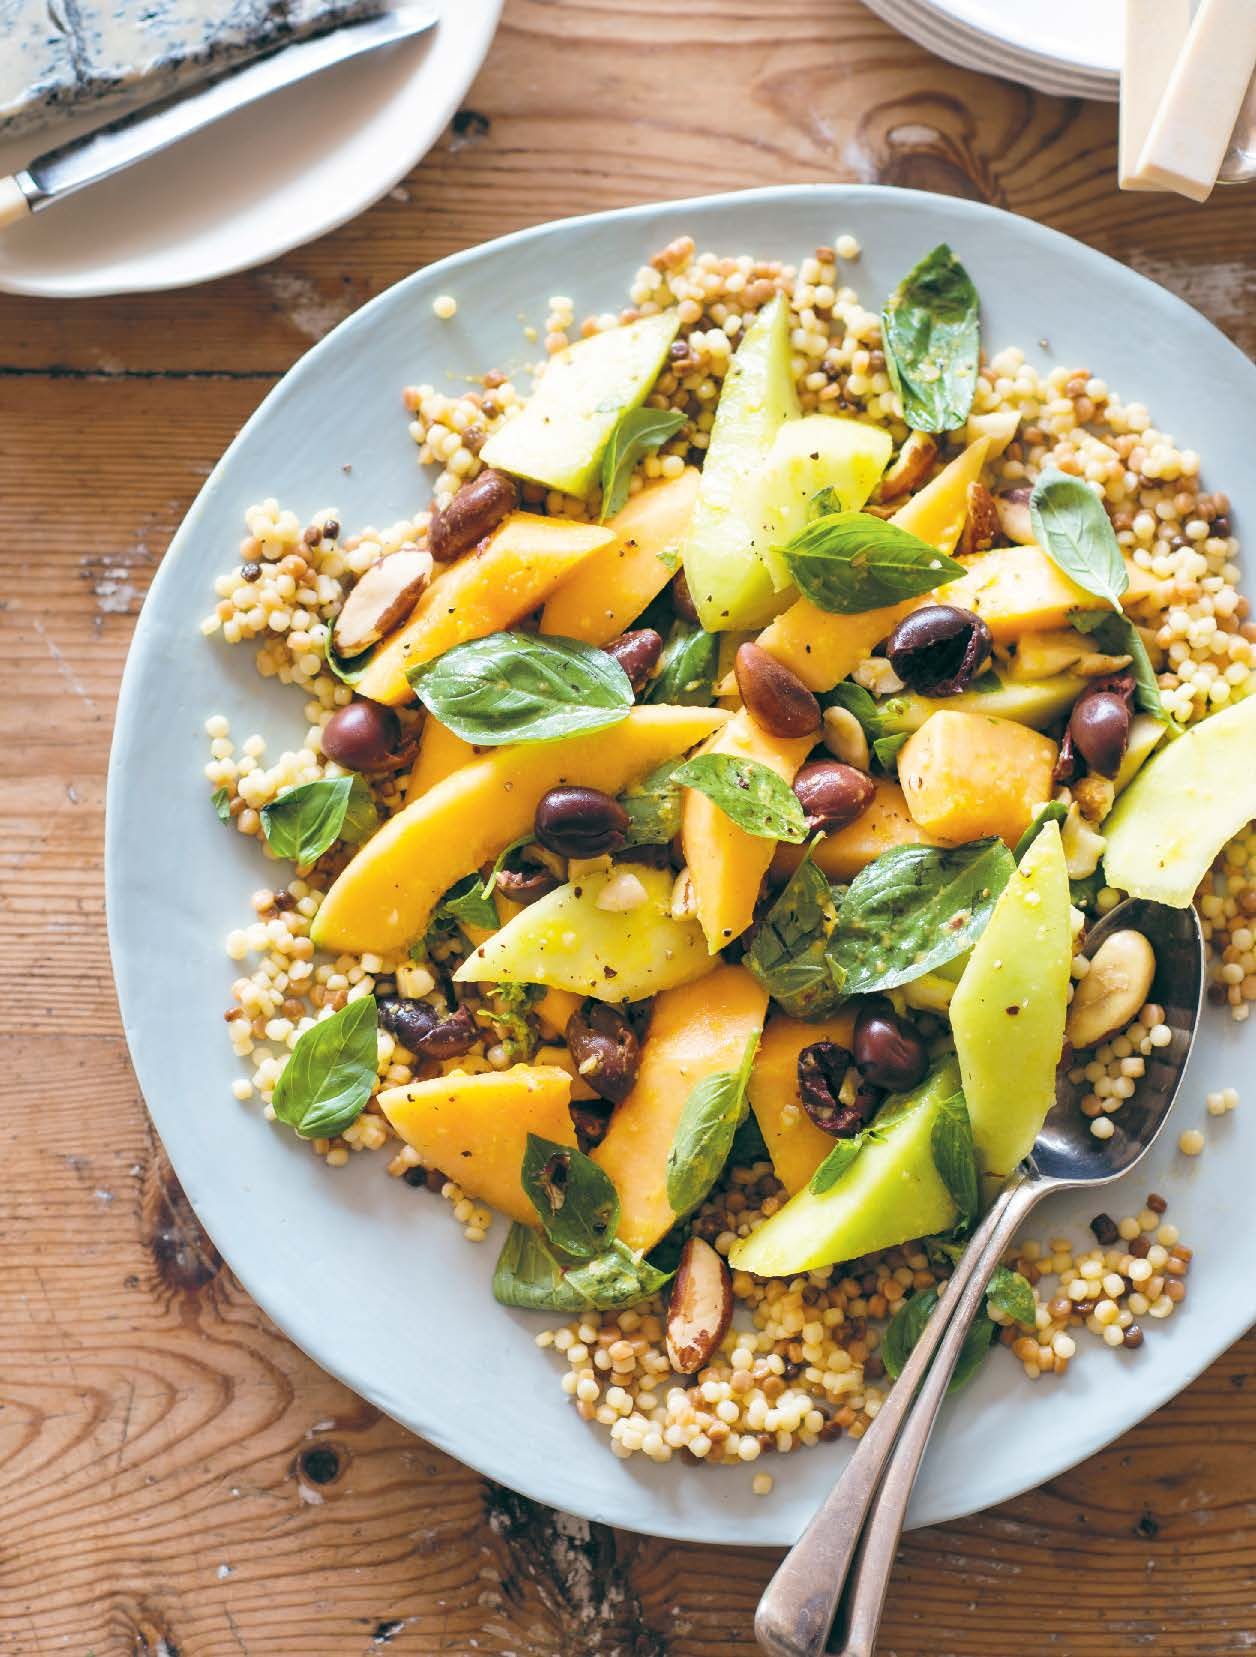 Melon salad with fregola, gorgonzola, olives and brazil nuts